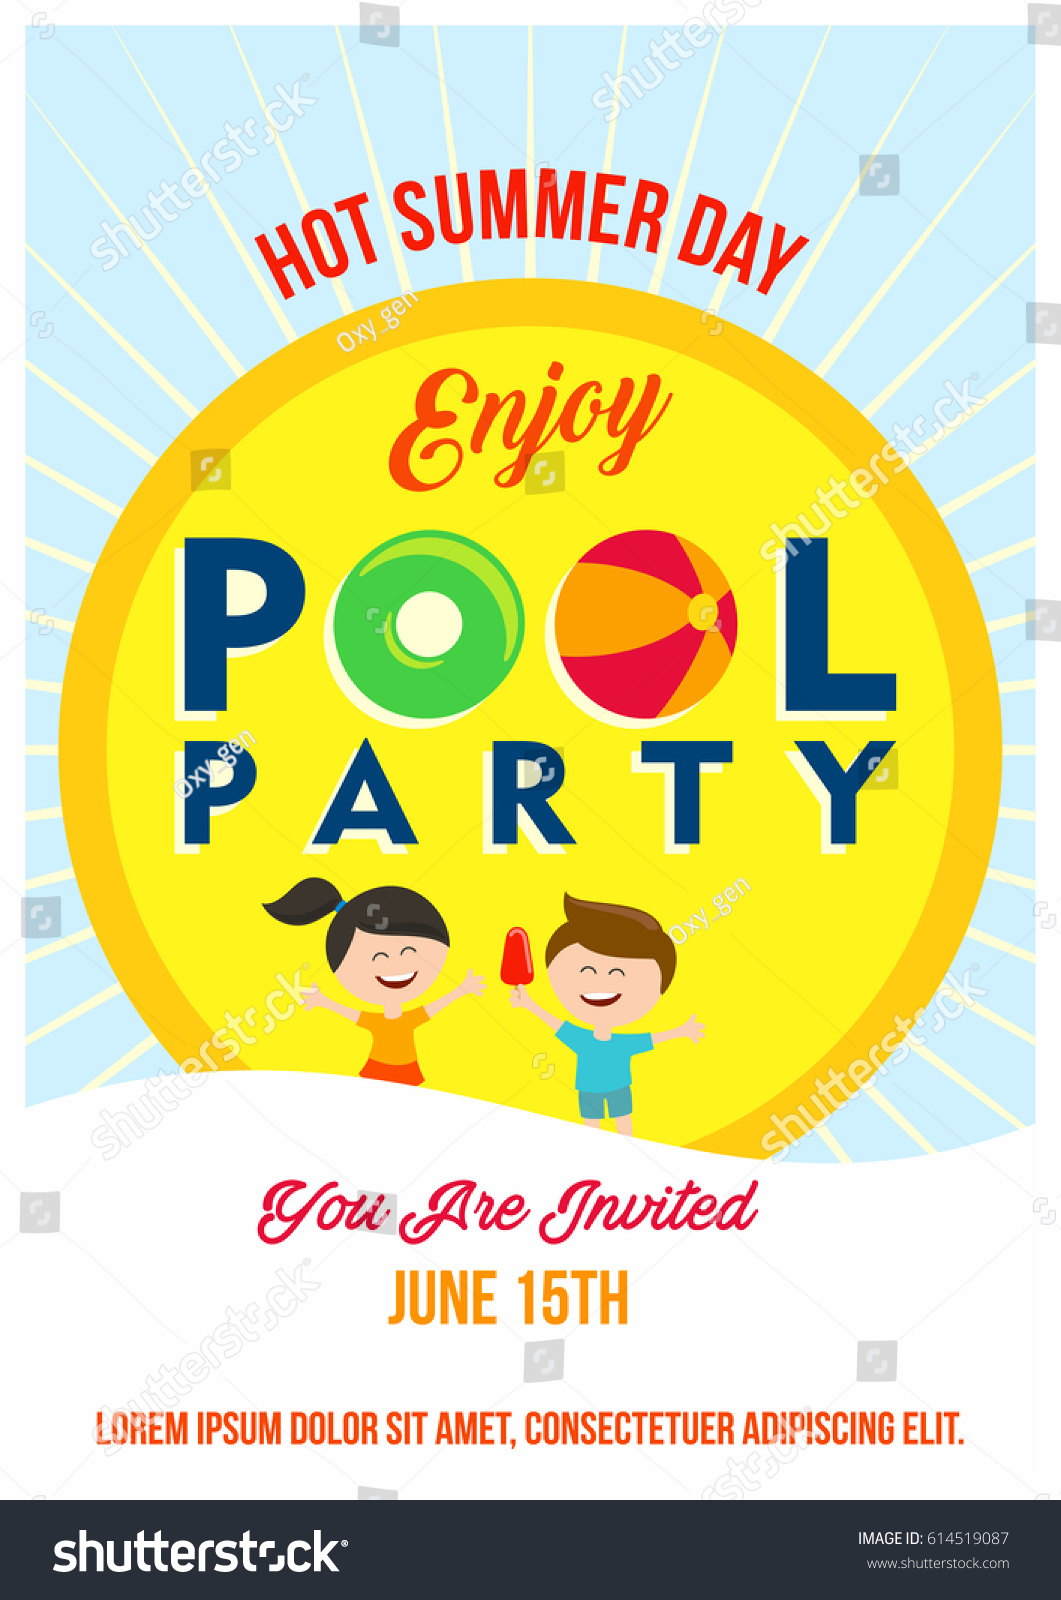 Pool Party Invitation Template Kids Summertime Stock Vector ...